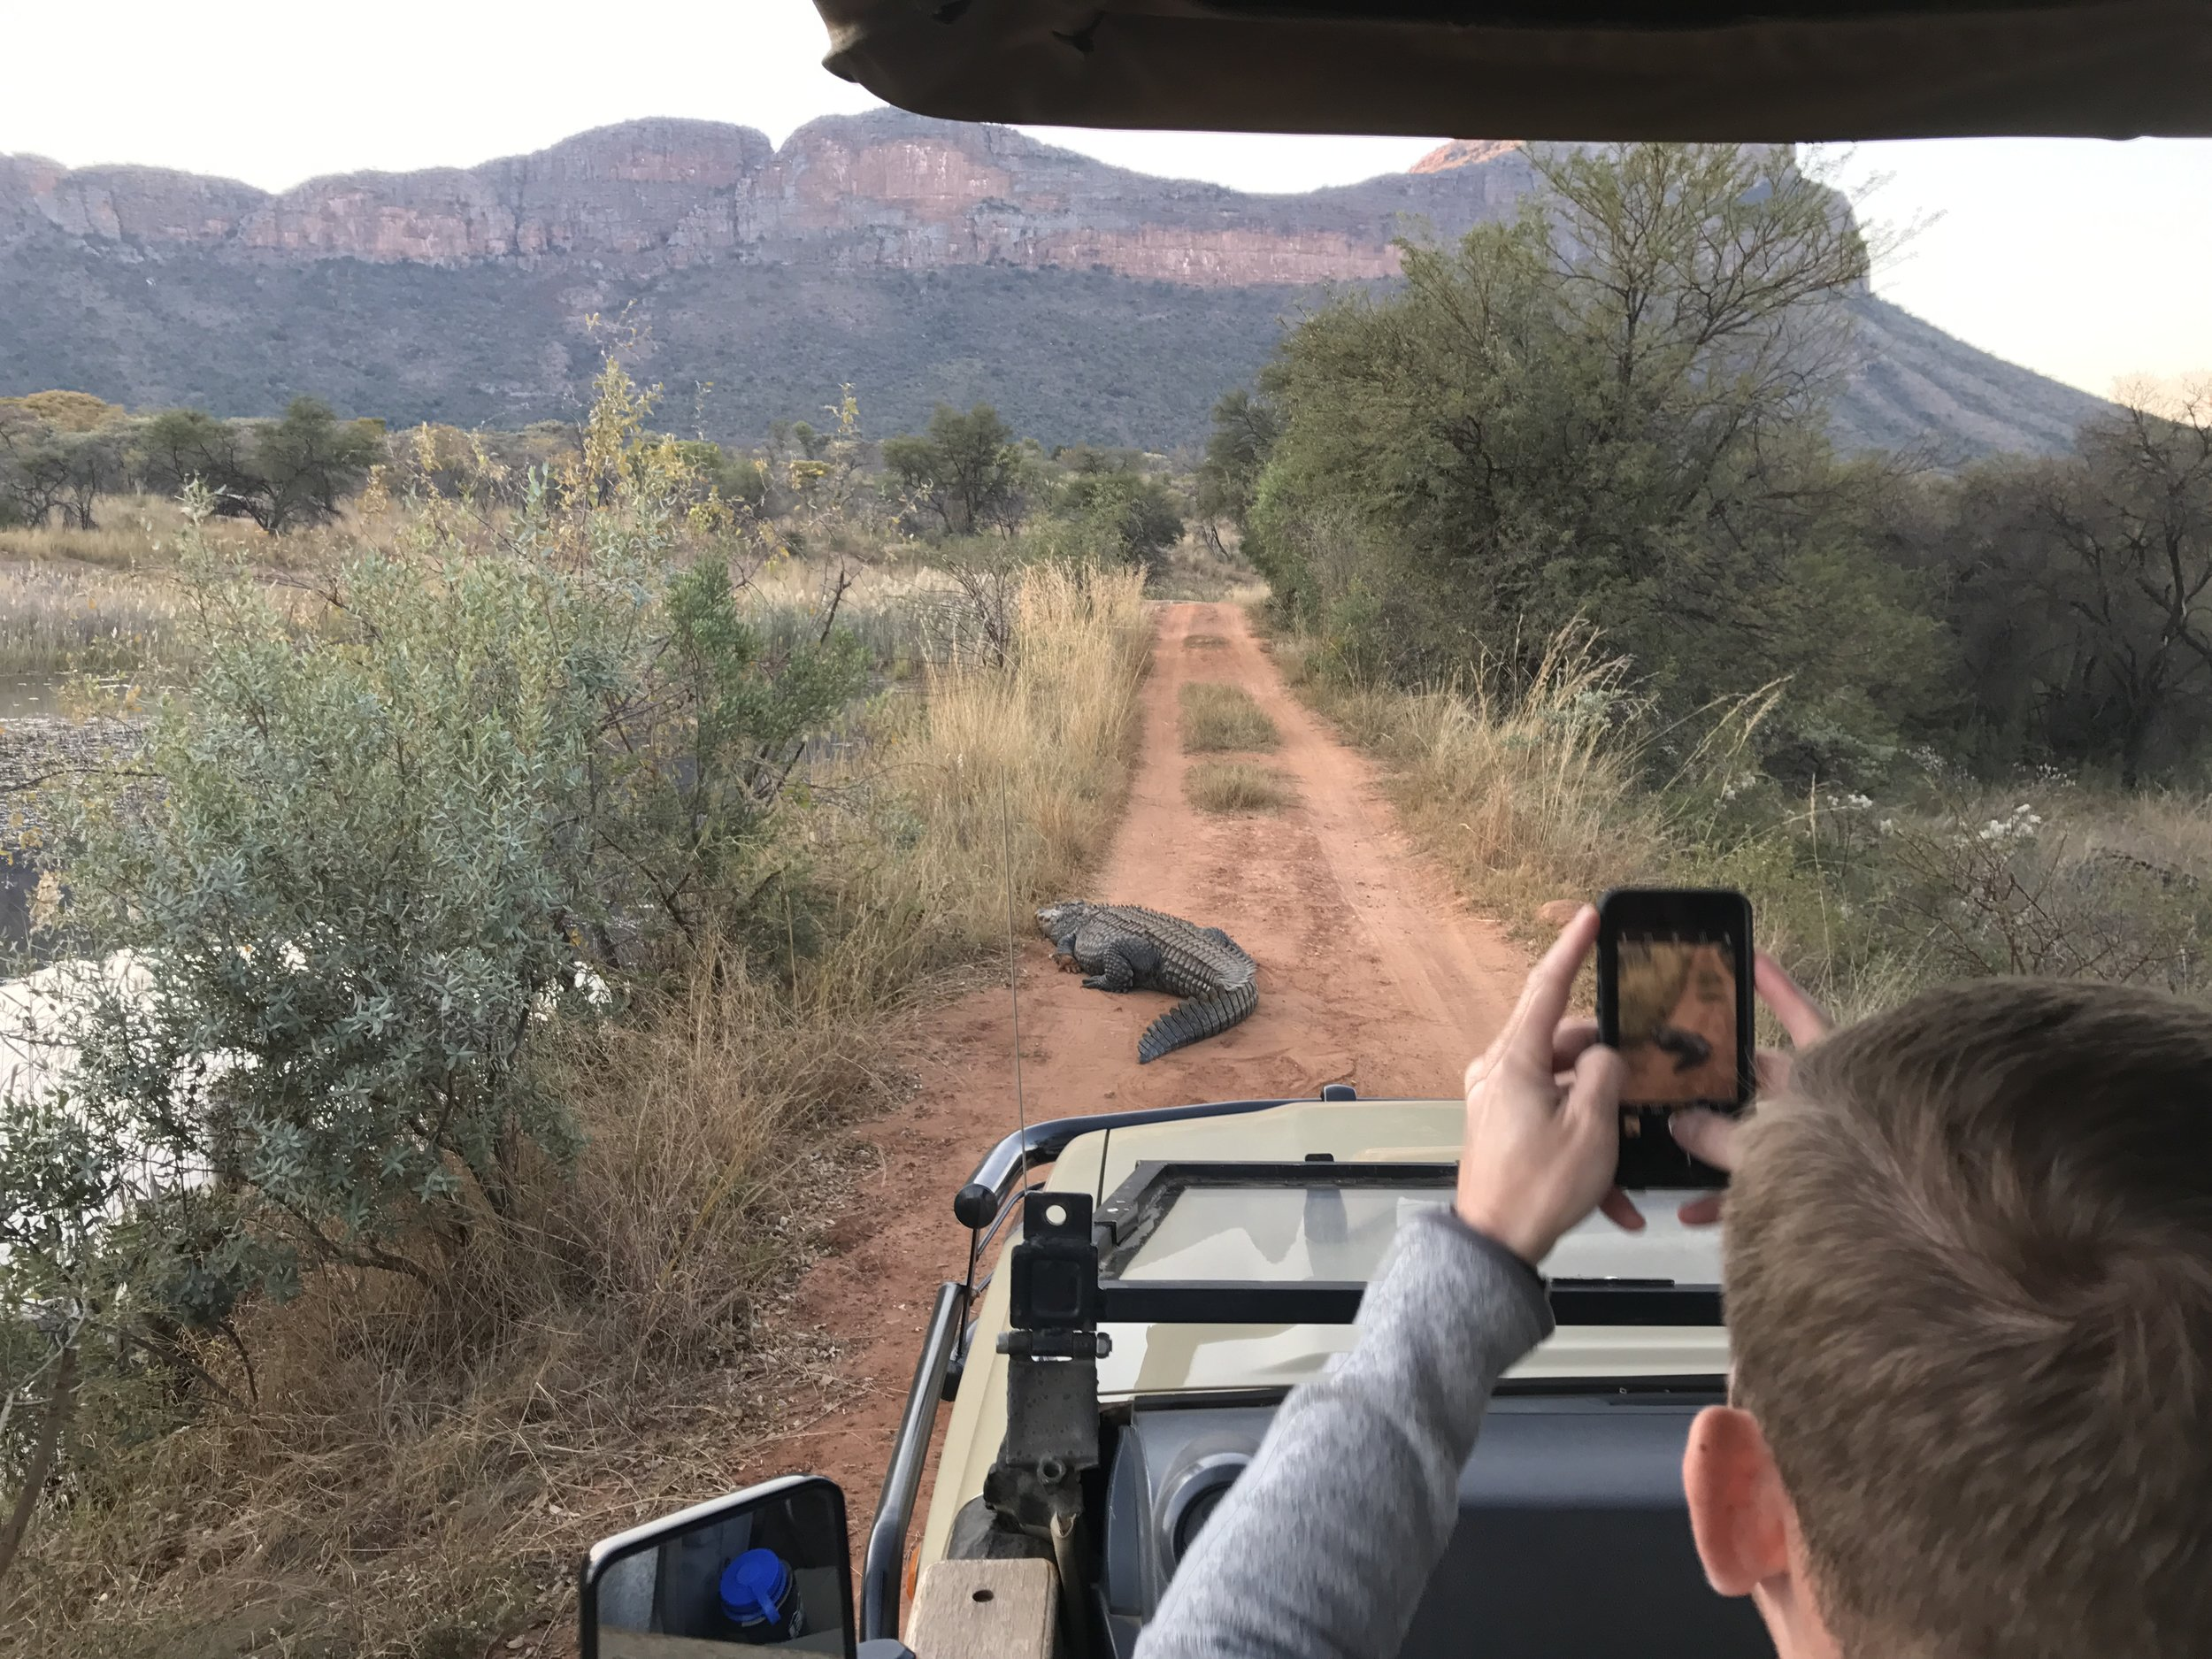 We saw this crocodile on our marathon course, two days later I would run down this dirt road.